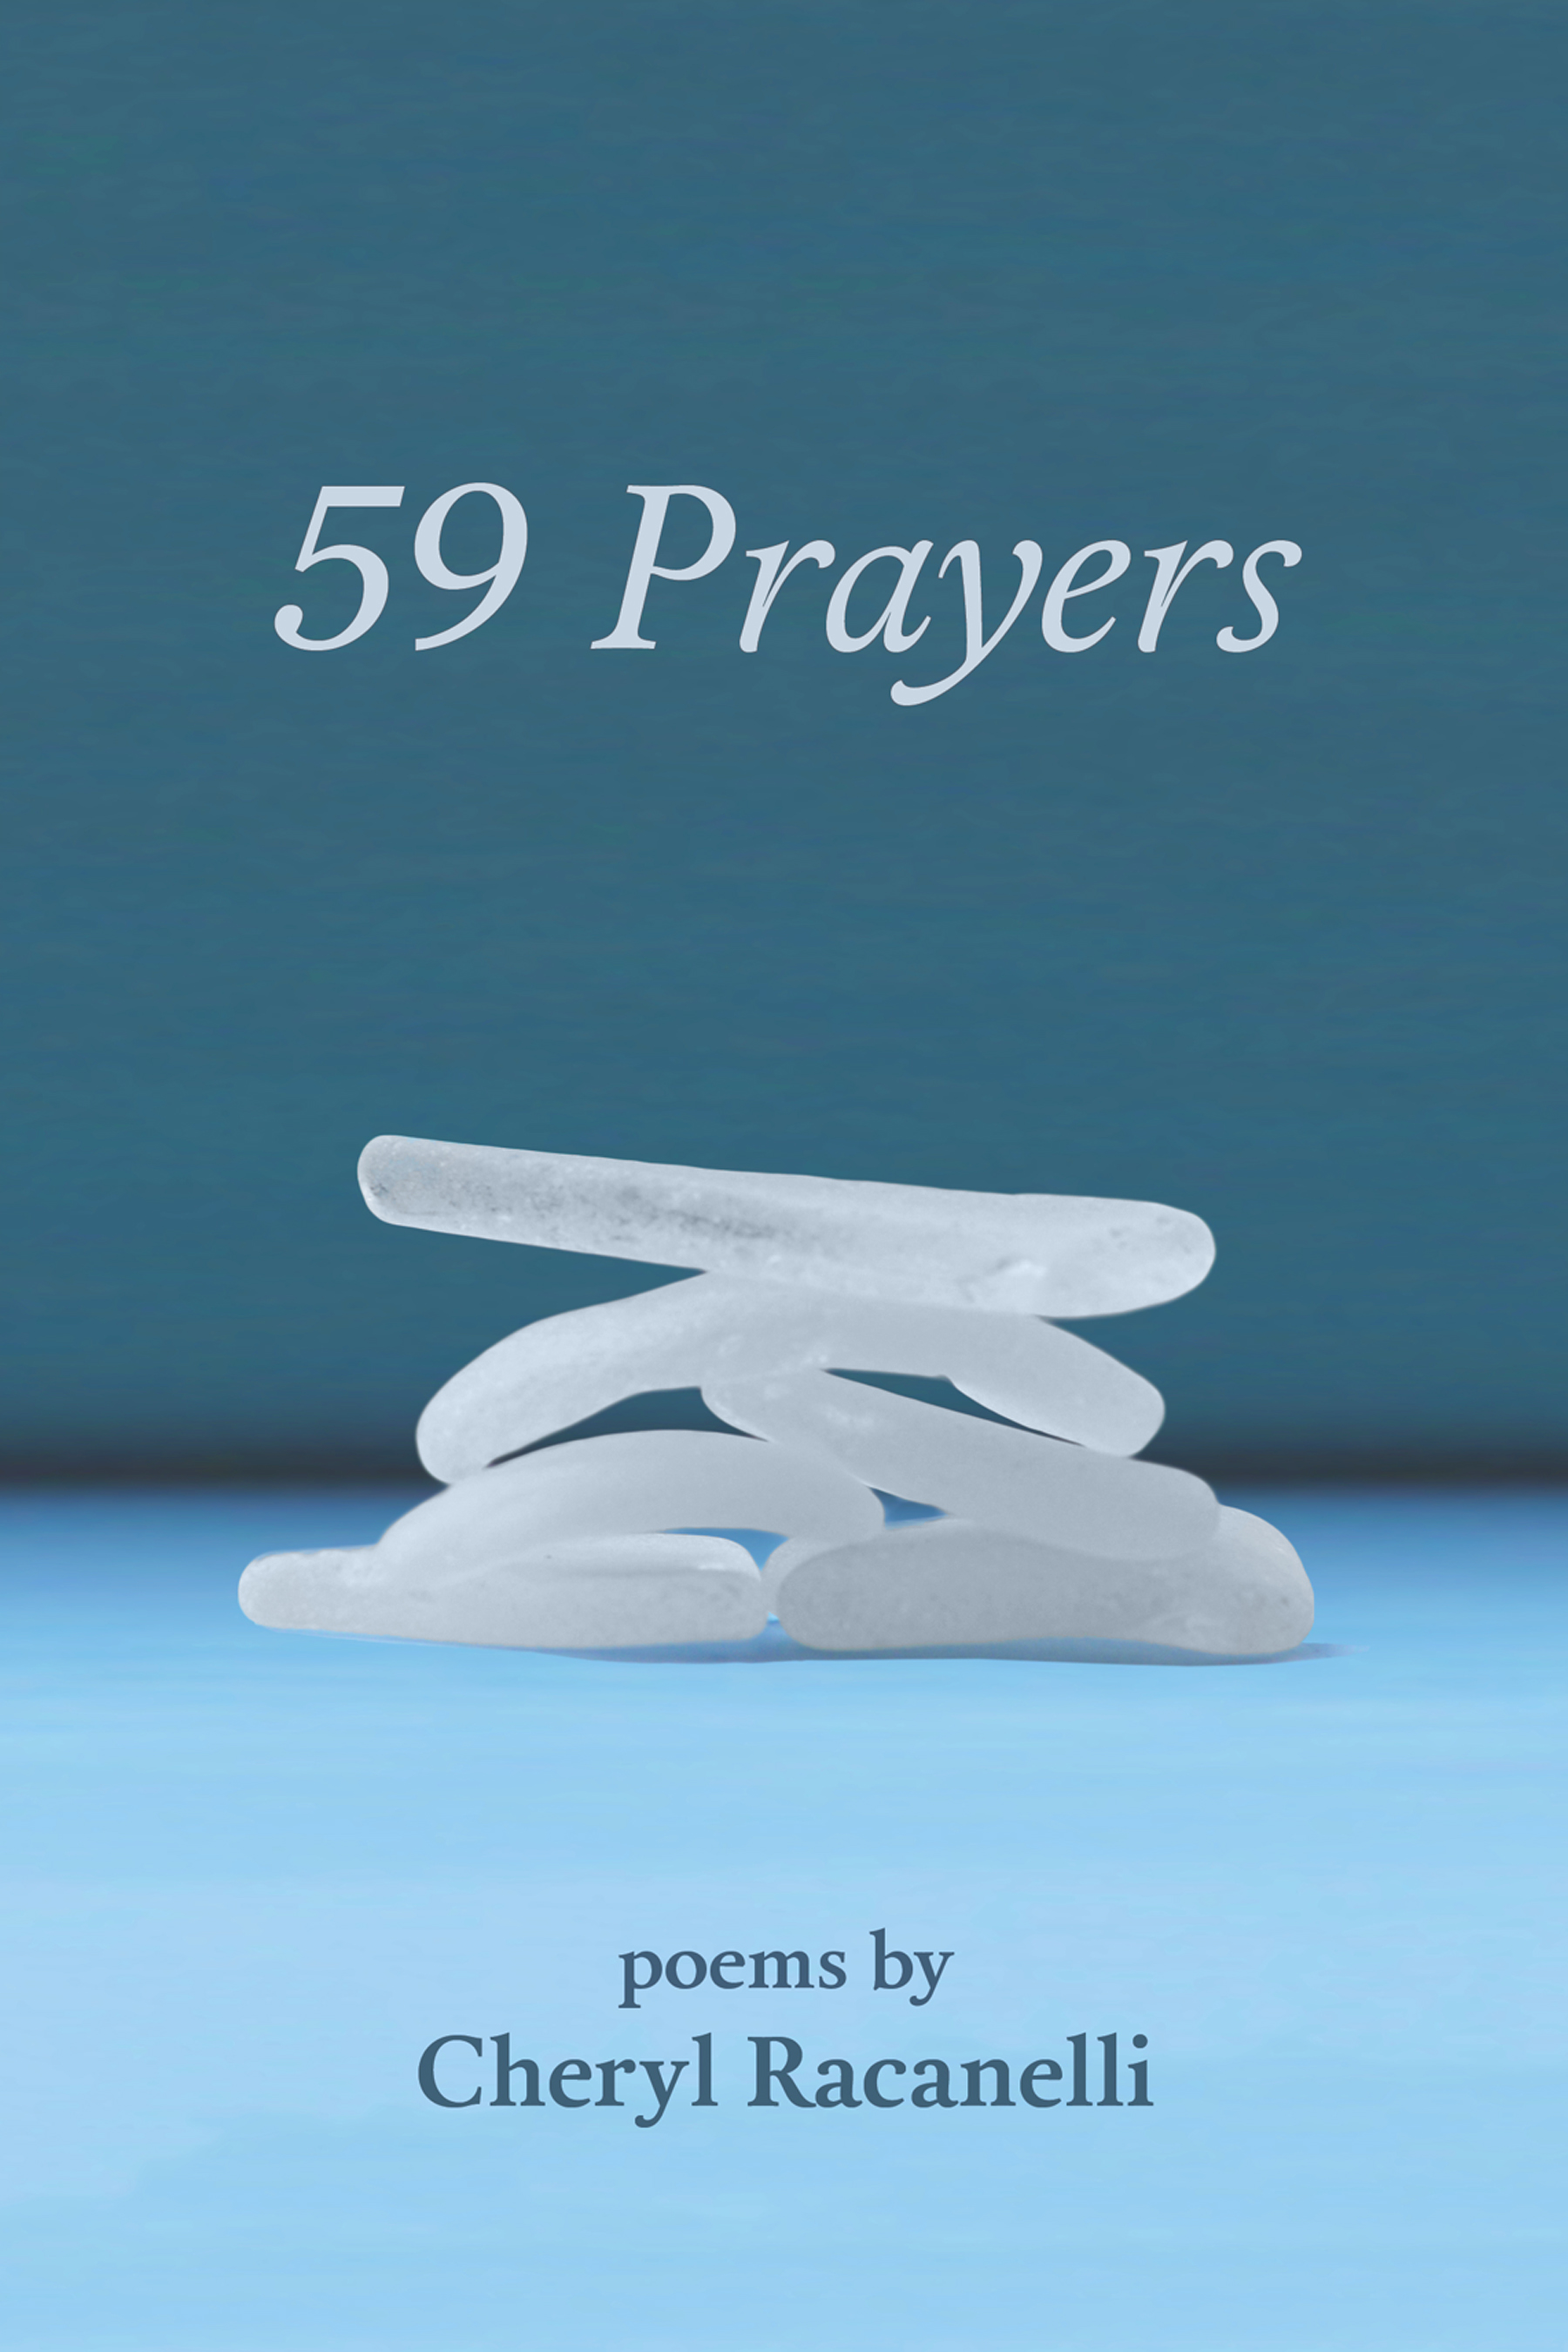 59Prayers_FrontCover_6x9at300 - FINAL - color corrected